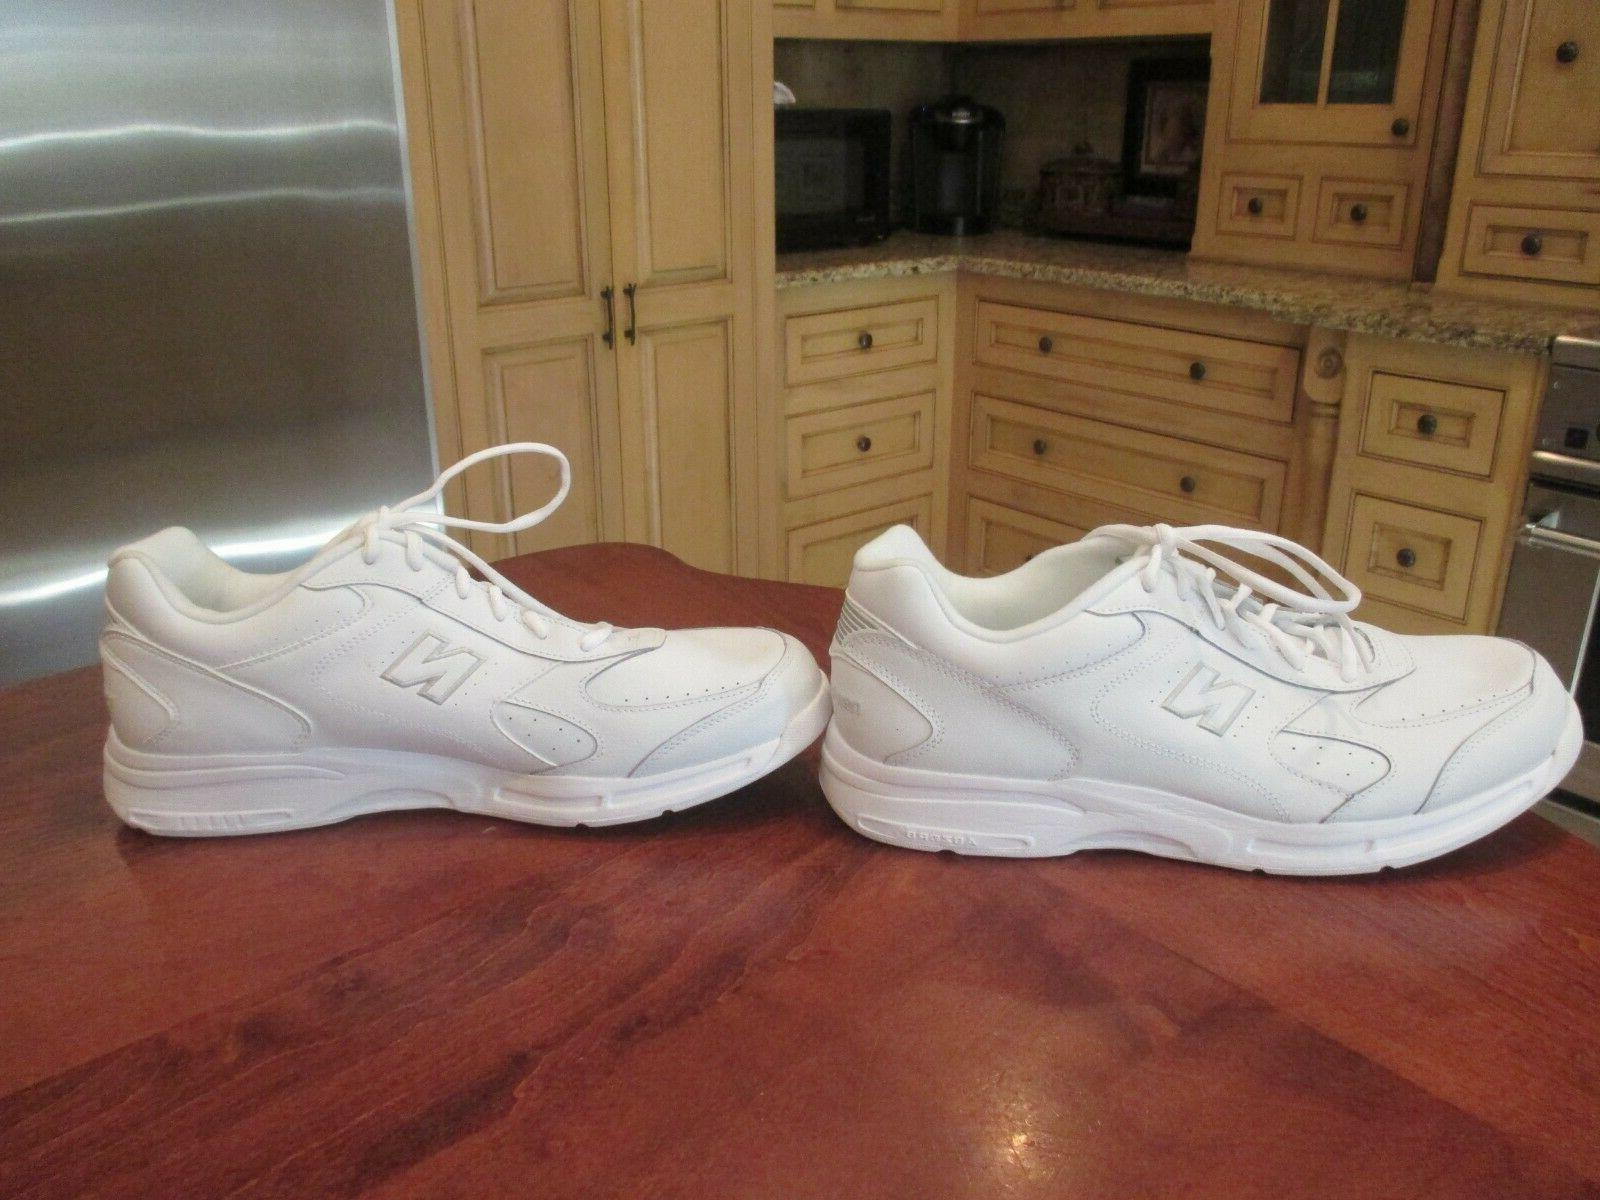 New Balance Tennis Shoes, Size New